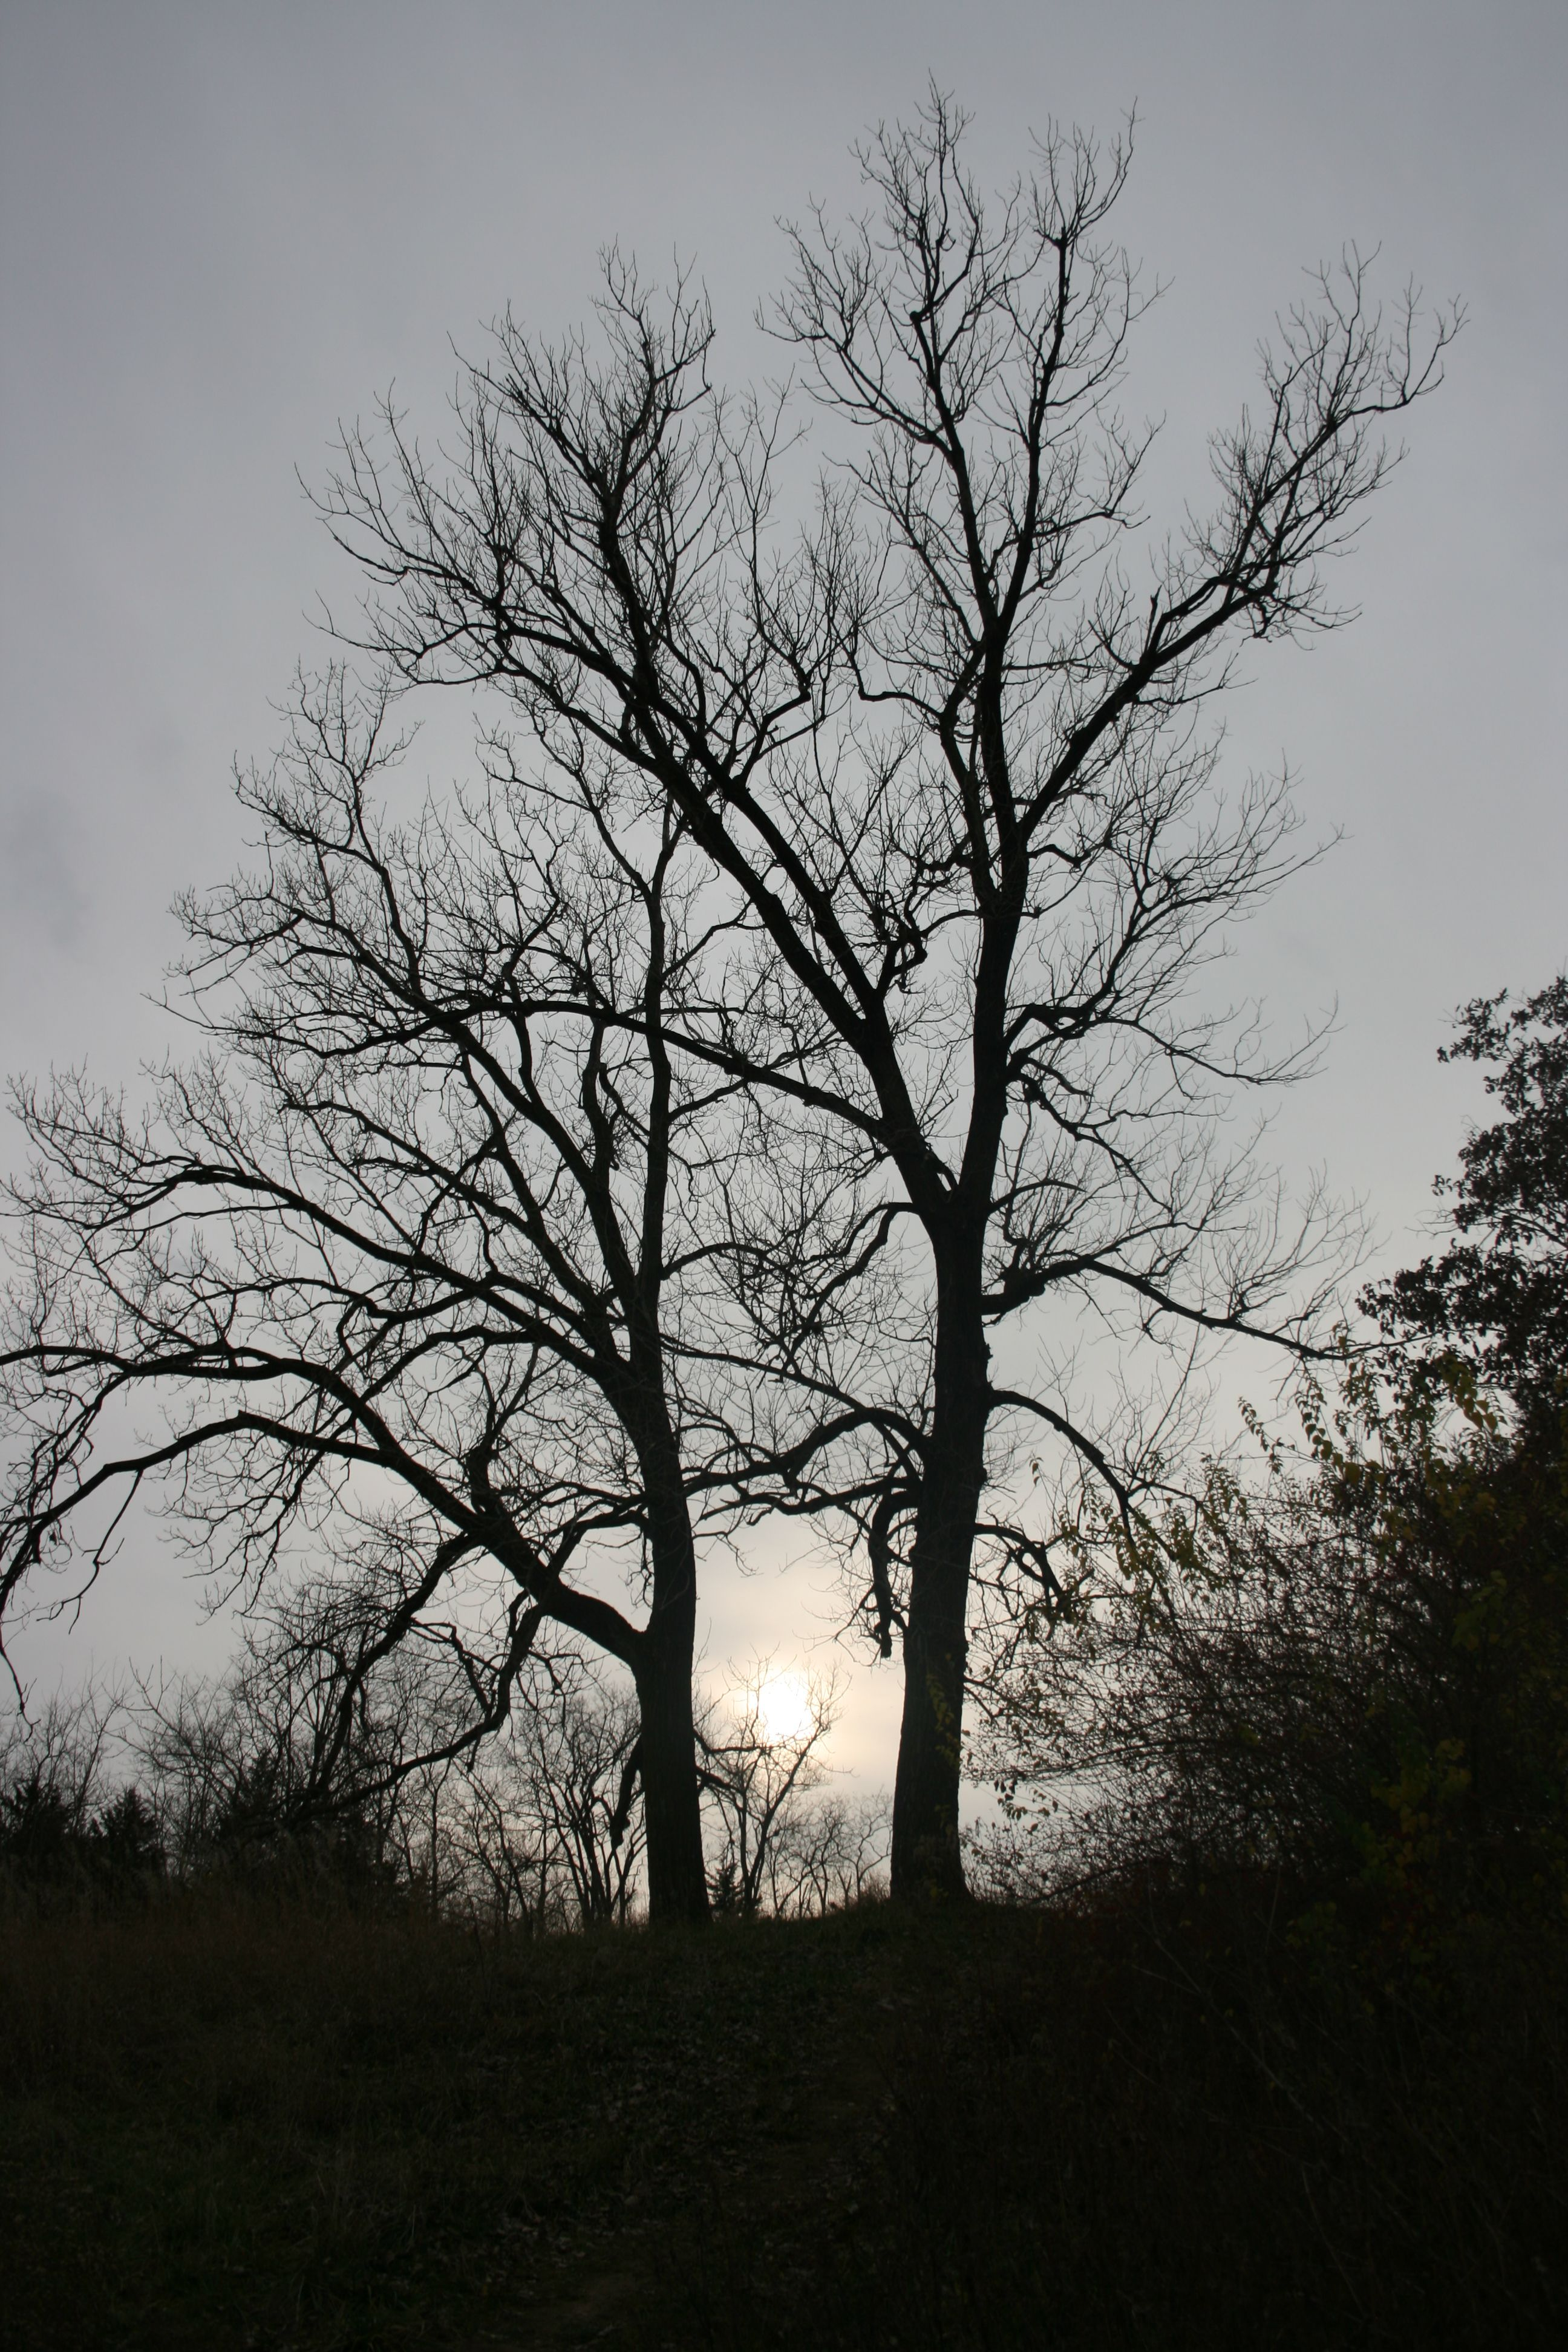 I love trees... Especially with no leaves